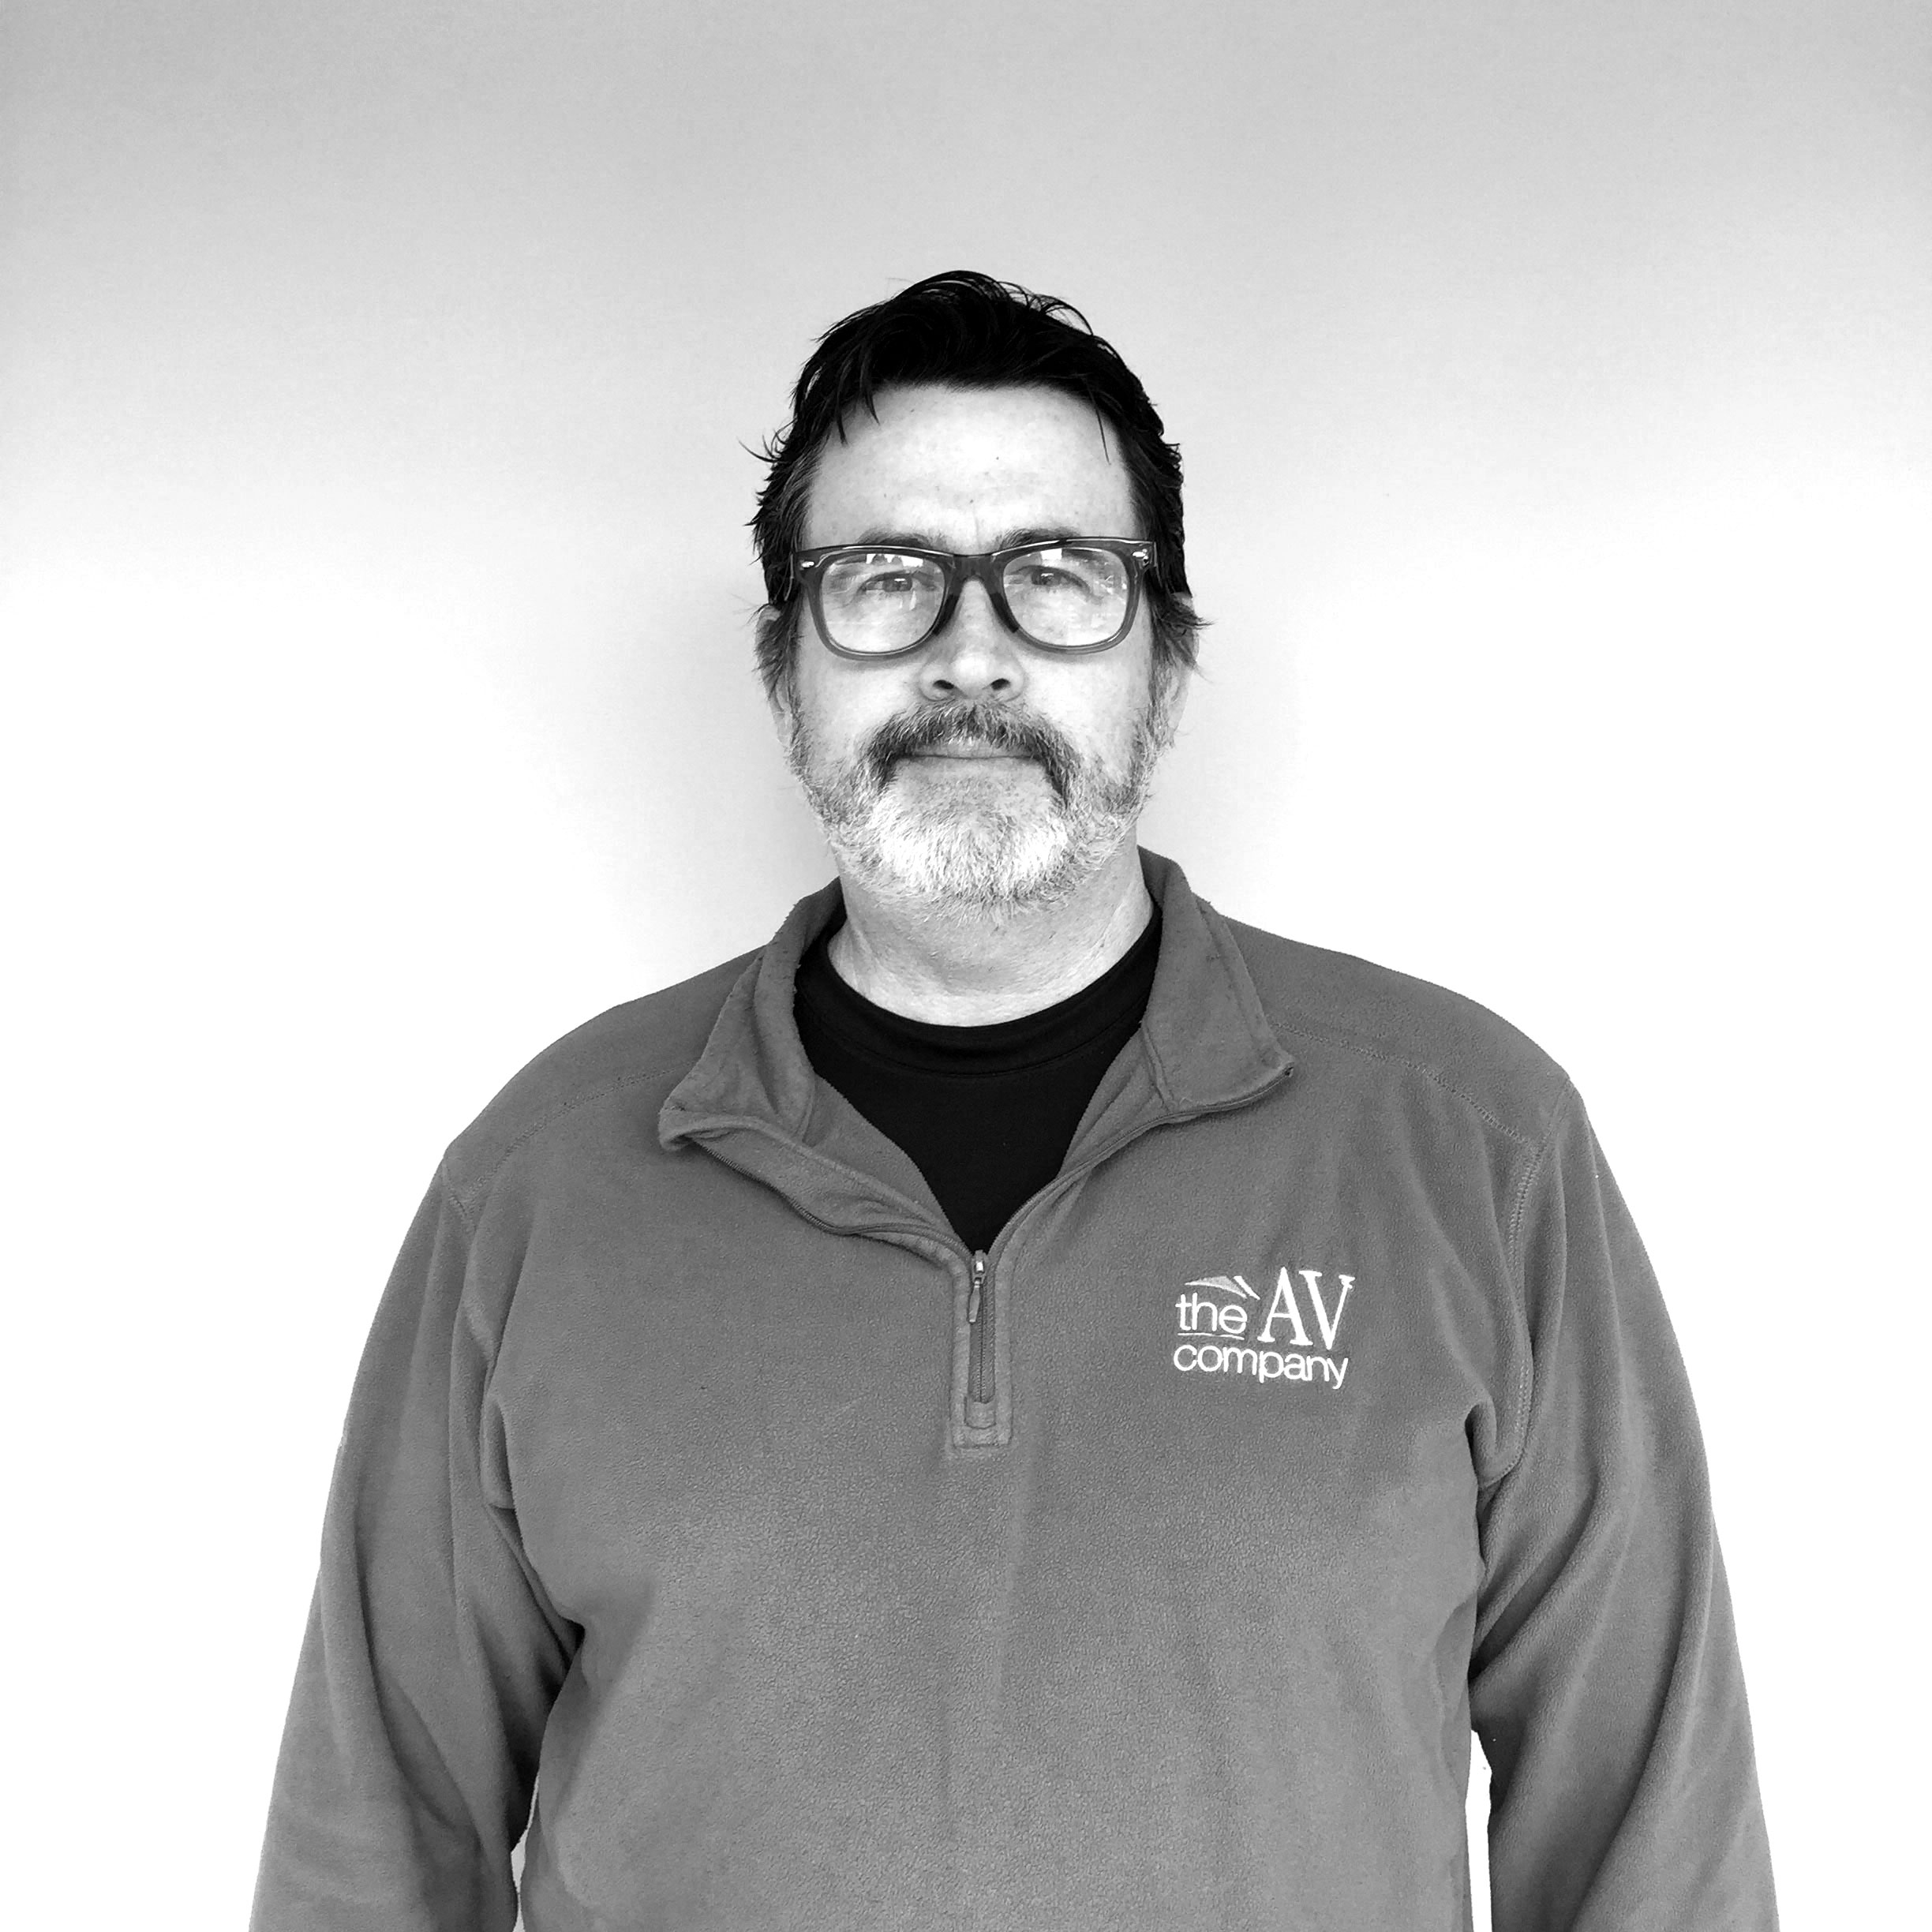 SEAN DAILEY - Assistant Director of AV Operations & Services    Hidden Talent:  Great at legos   Marvel Alter-Ego Superpower:  The ability to change form   Favorite Place to Visit:  London or Carlsbad, CA   Favorite thing about working with The AV Co.:  The people & the everyday challenges.